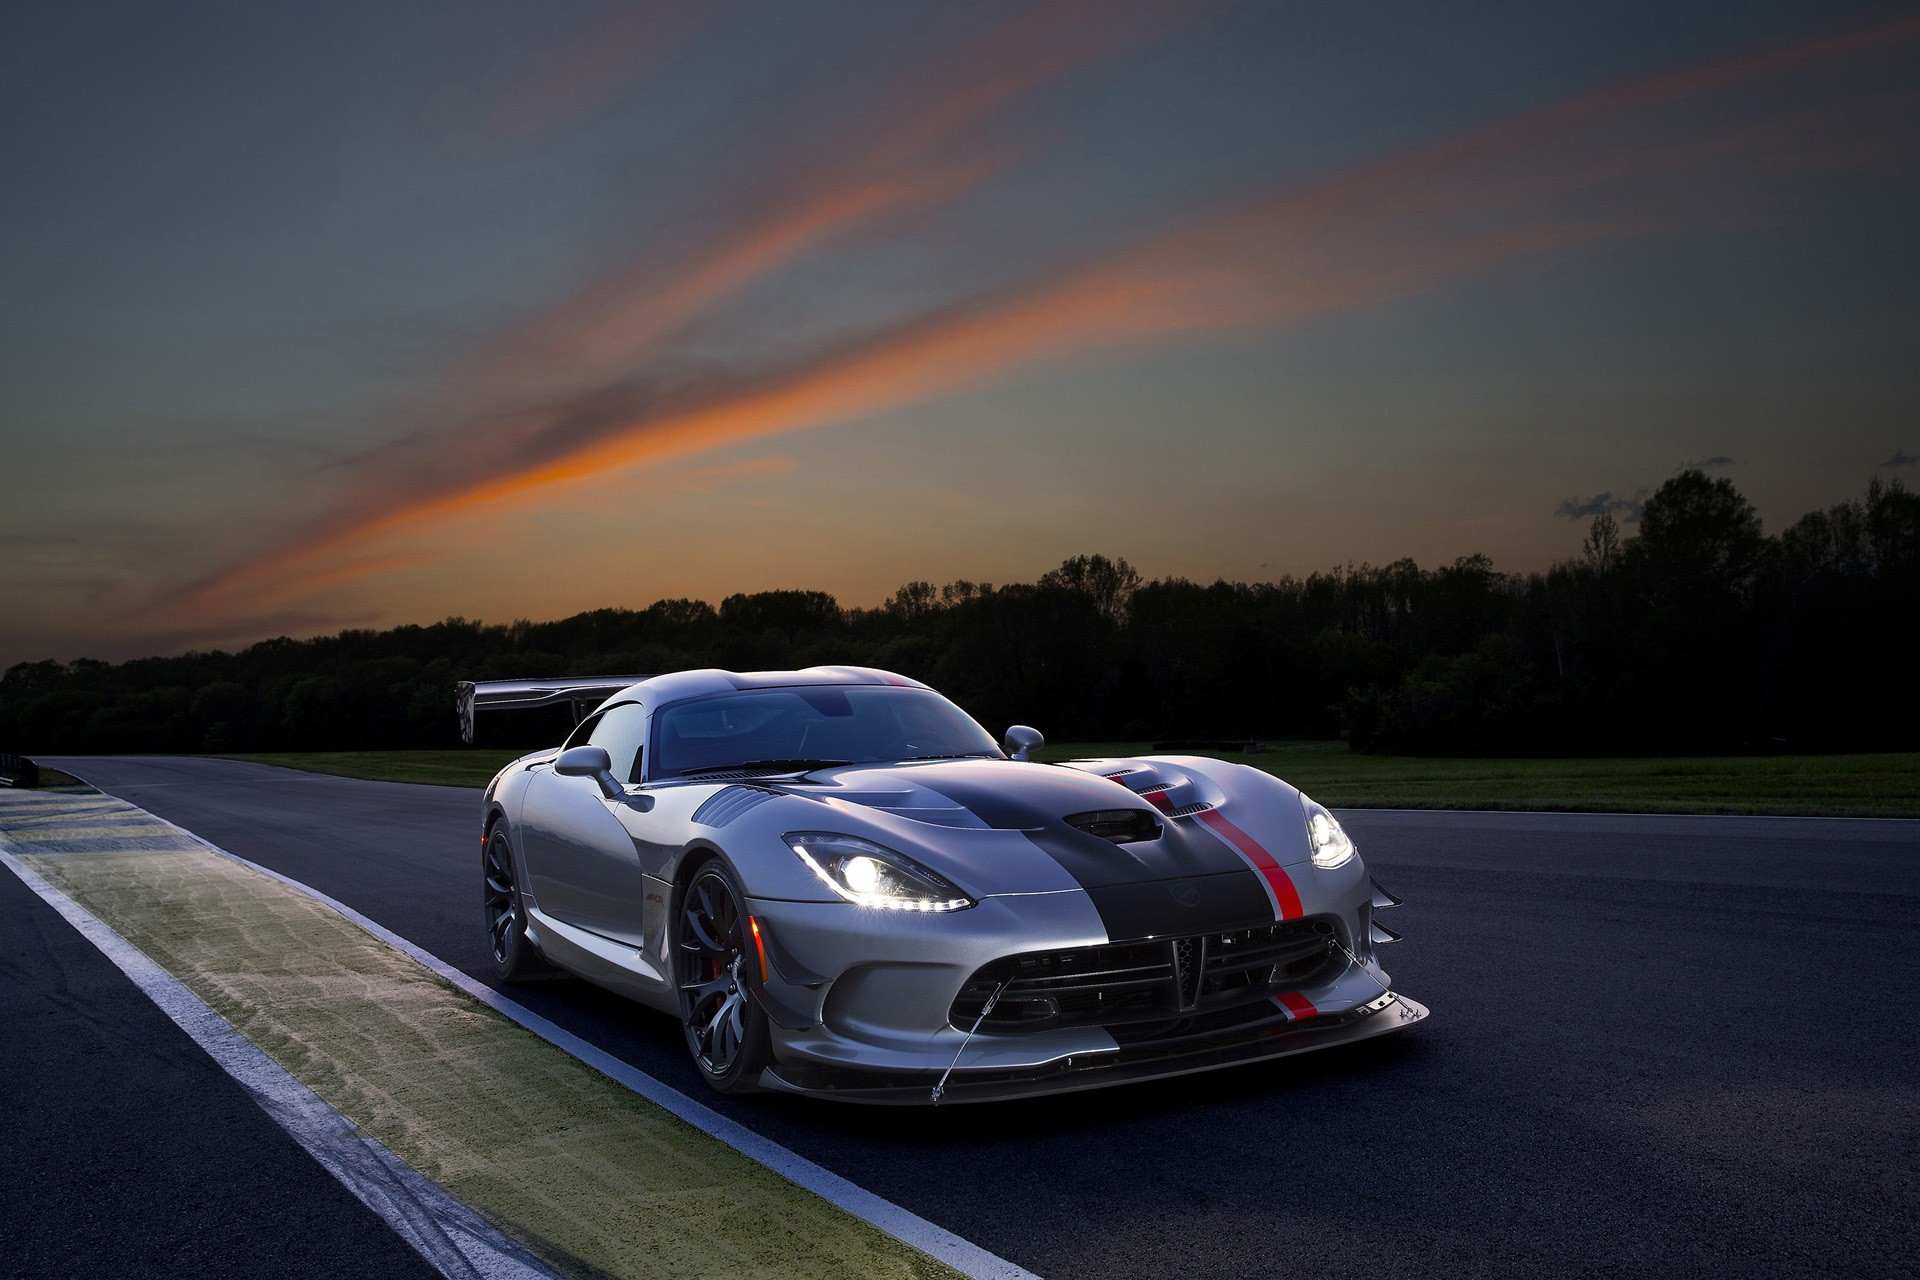 2016 Dodge Viper ACR Review - First Drive - Motor Trend